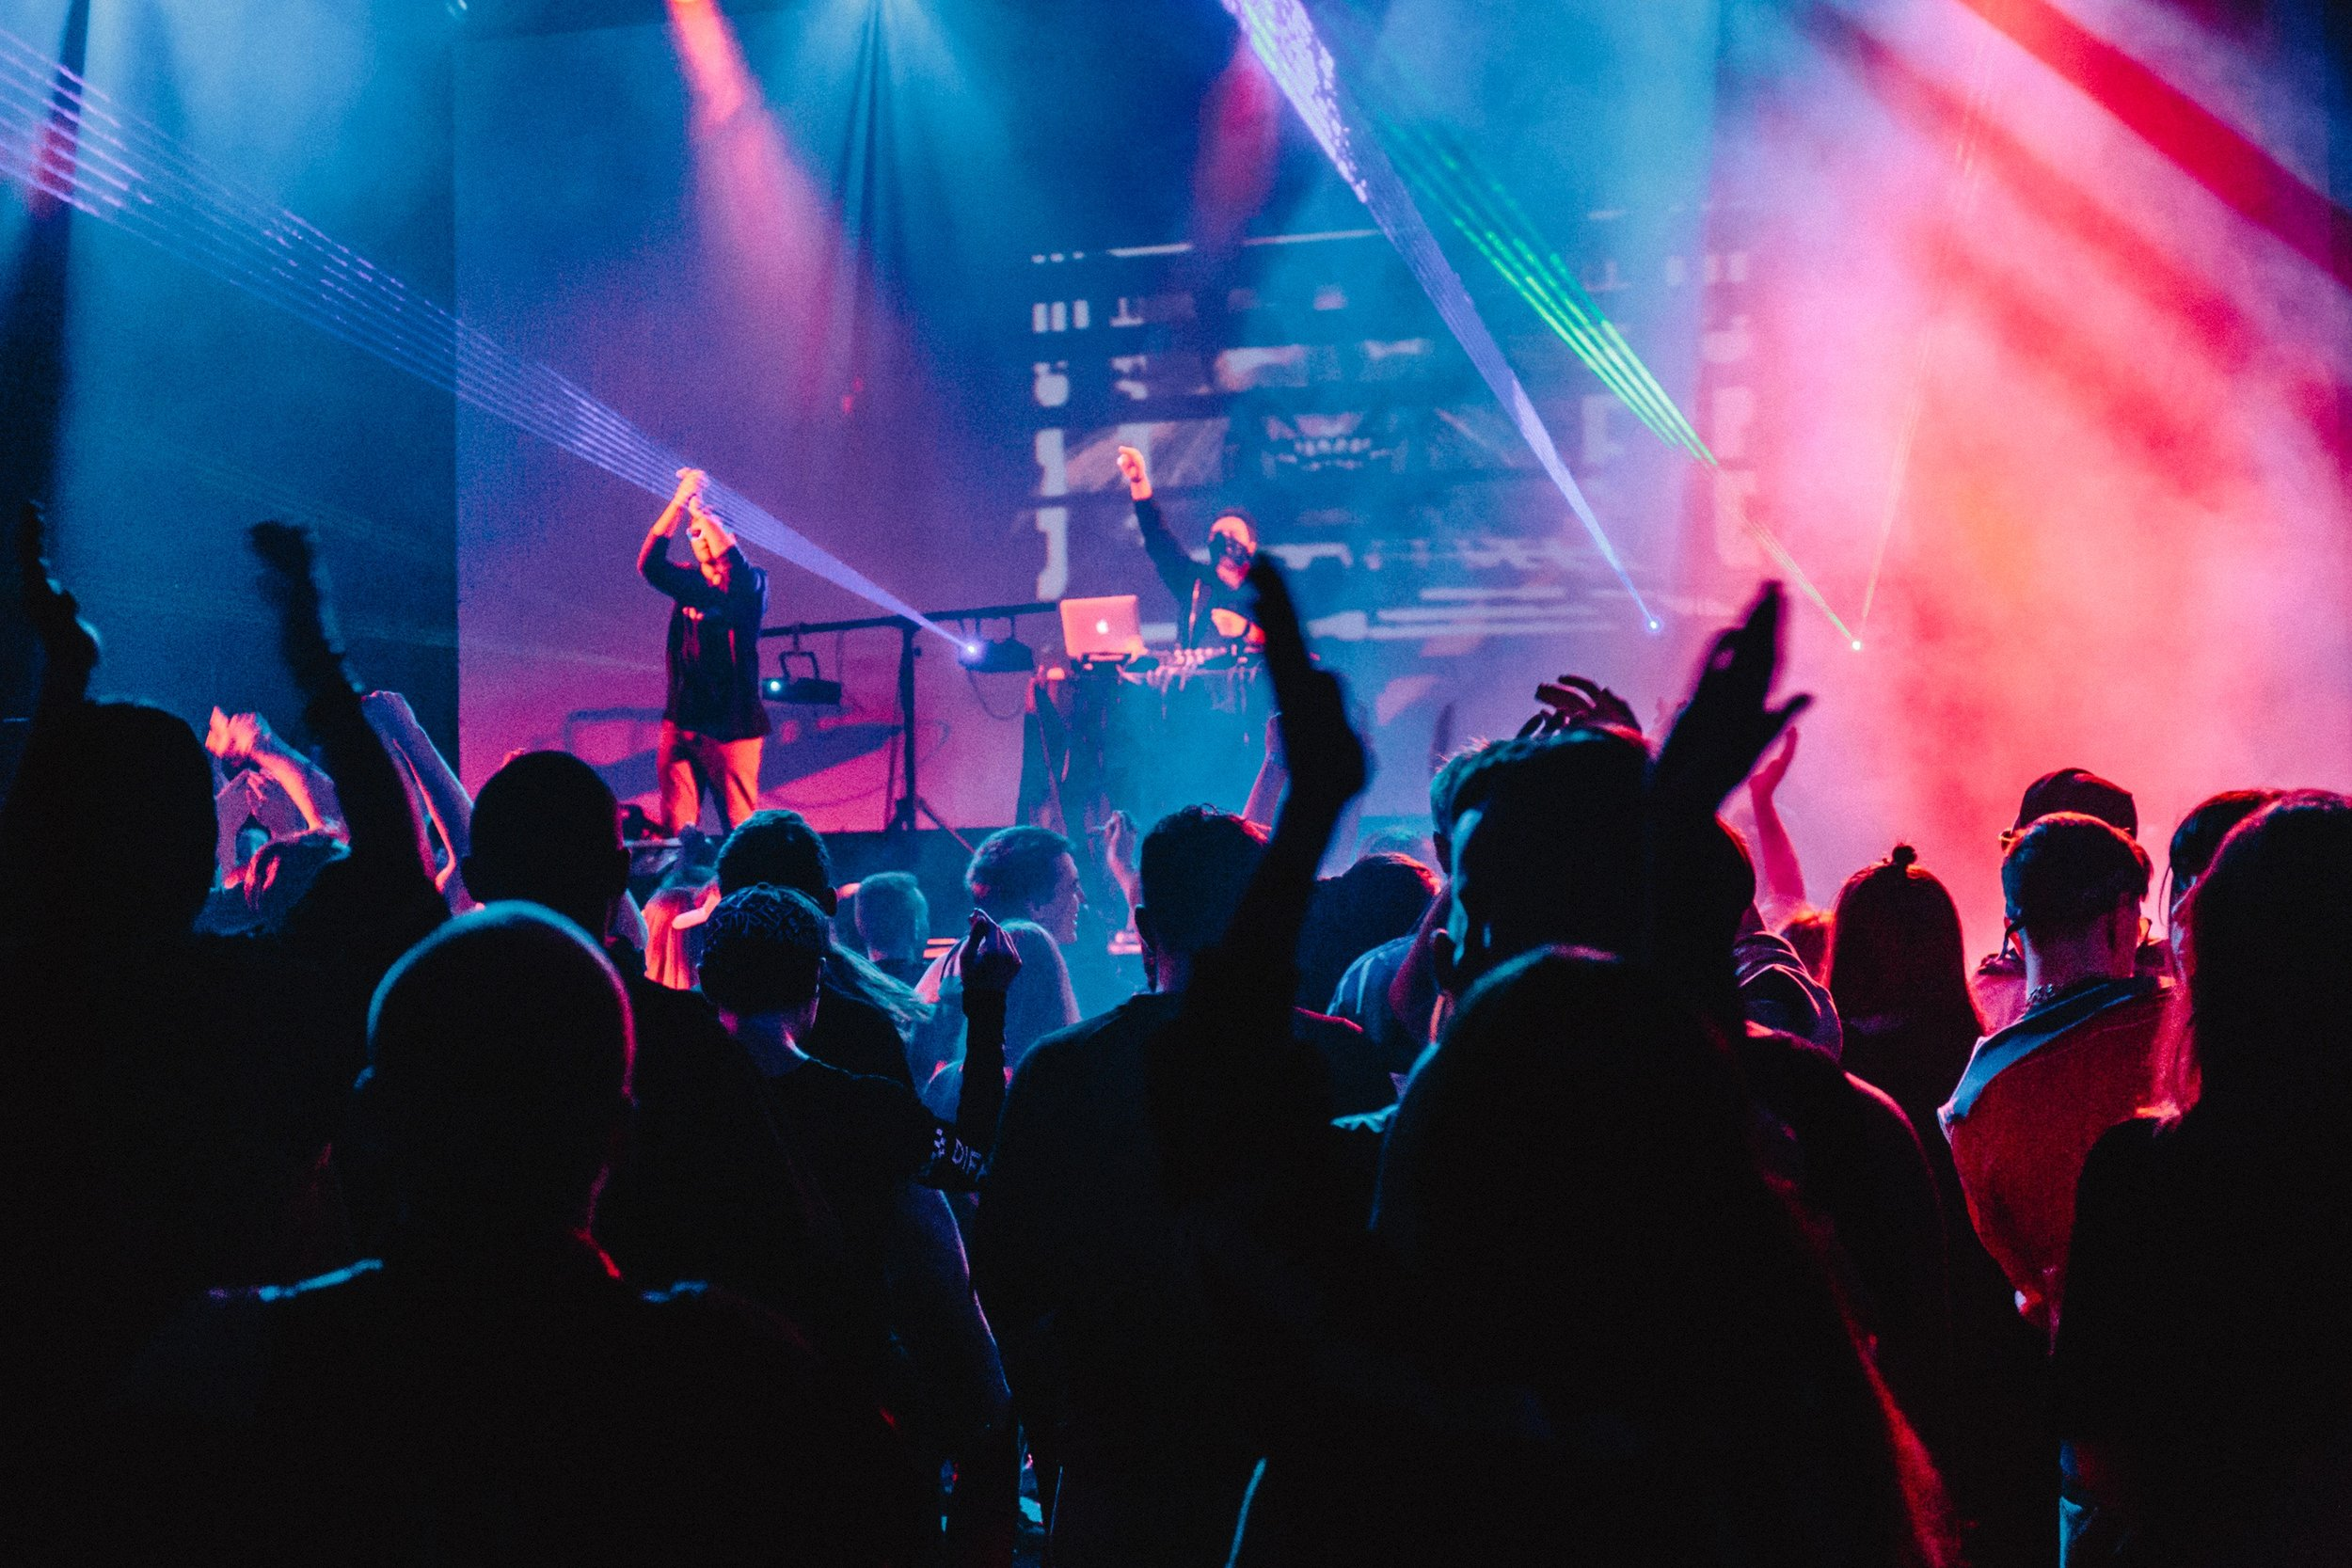 ENTERTAINMENT - Full Concert Packages AvailableEnjoy front row seats, private meet & greets, & backstage access. We also offer access music festivals, celebrity talks, and private experiences.